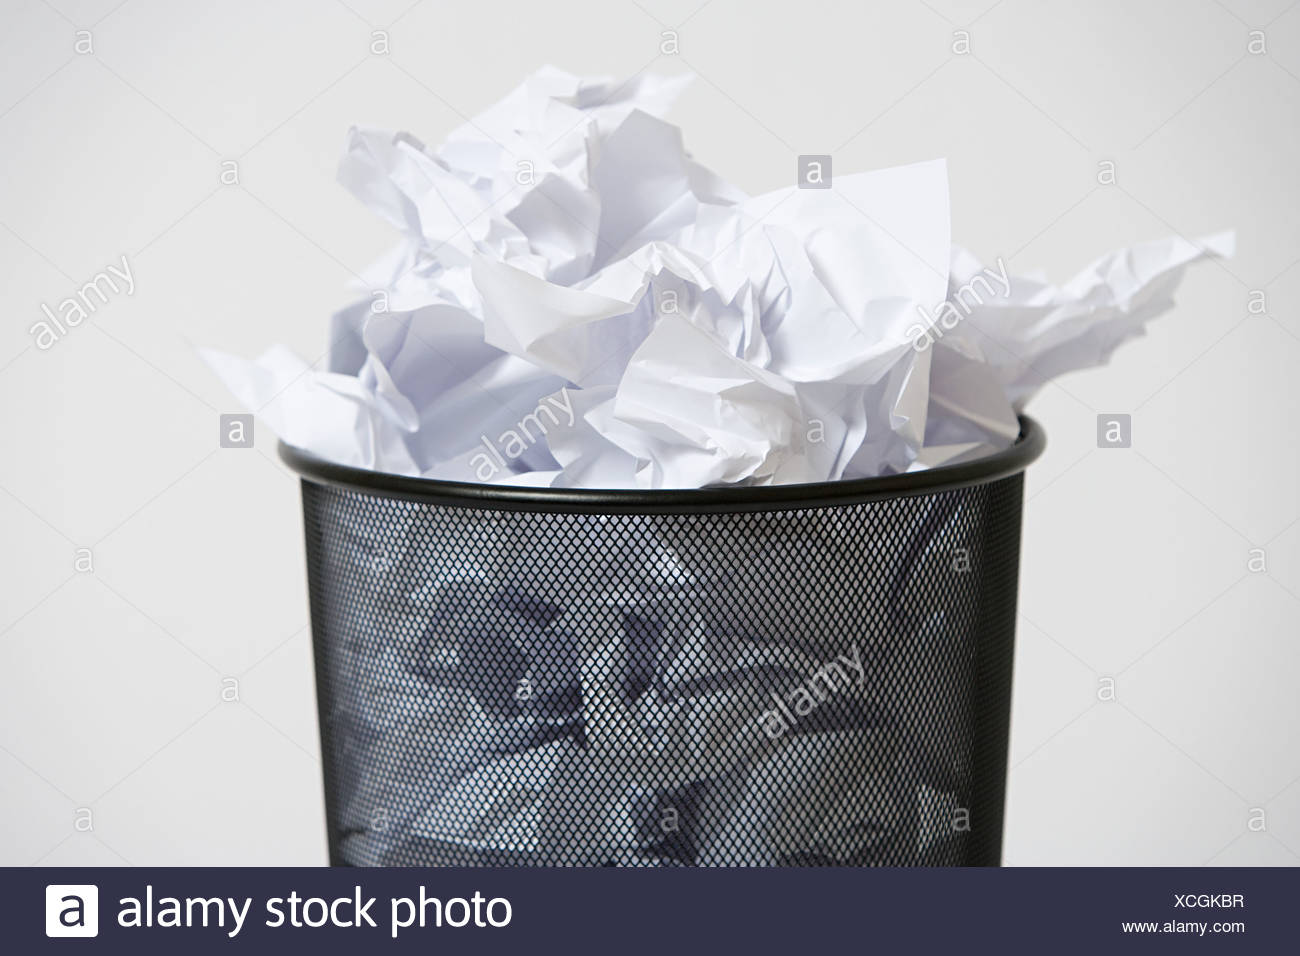 A wastepaper basket with crumpled up paper in it - Stock Image